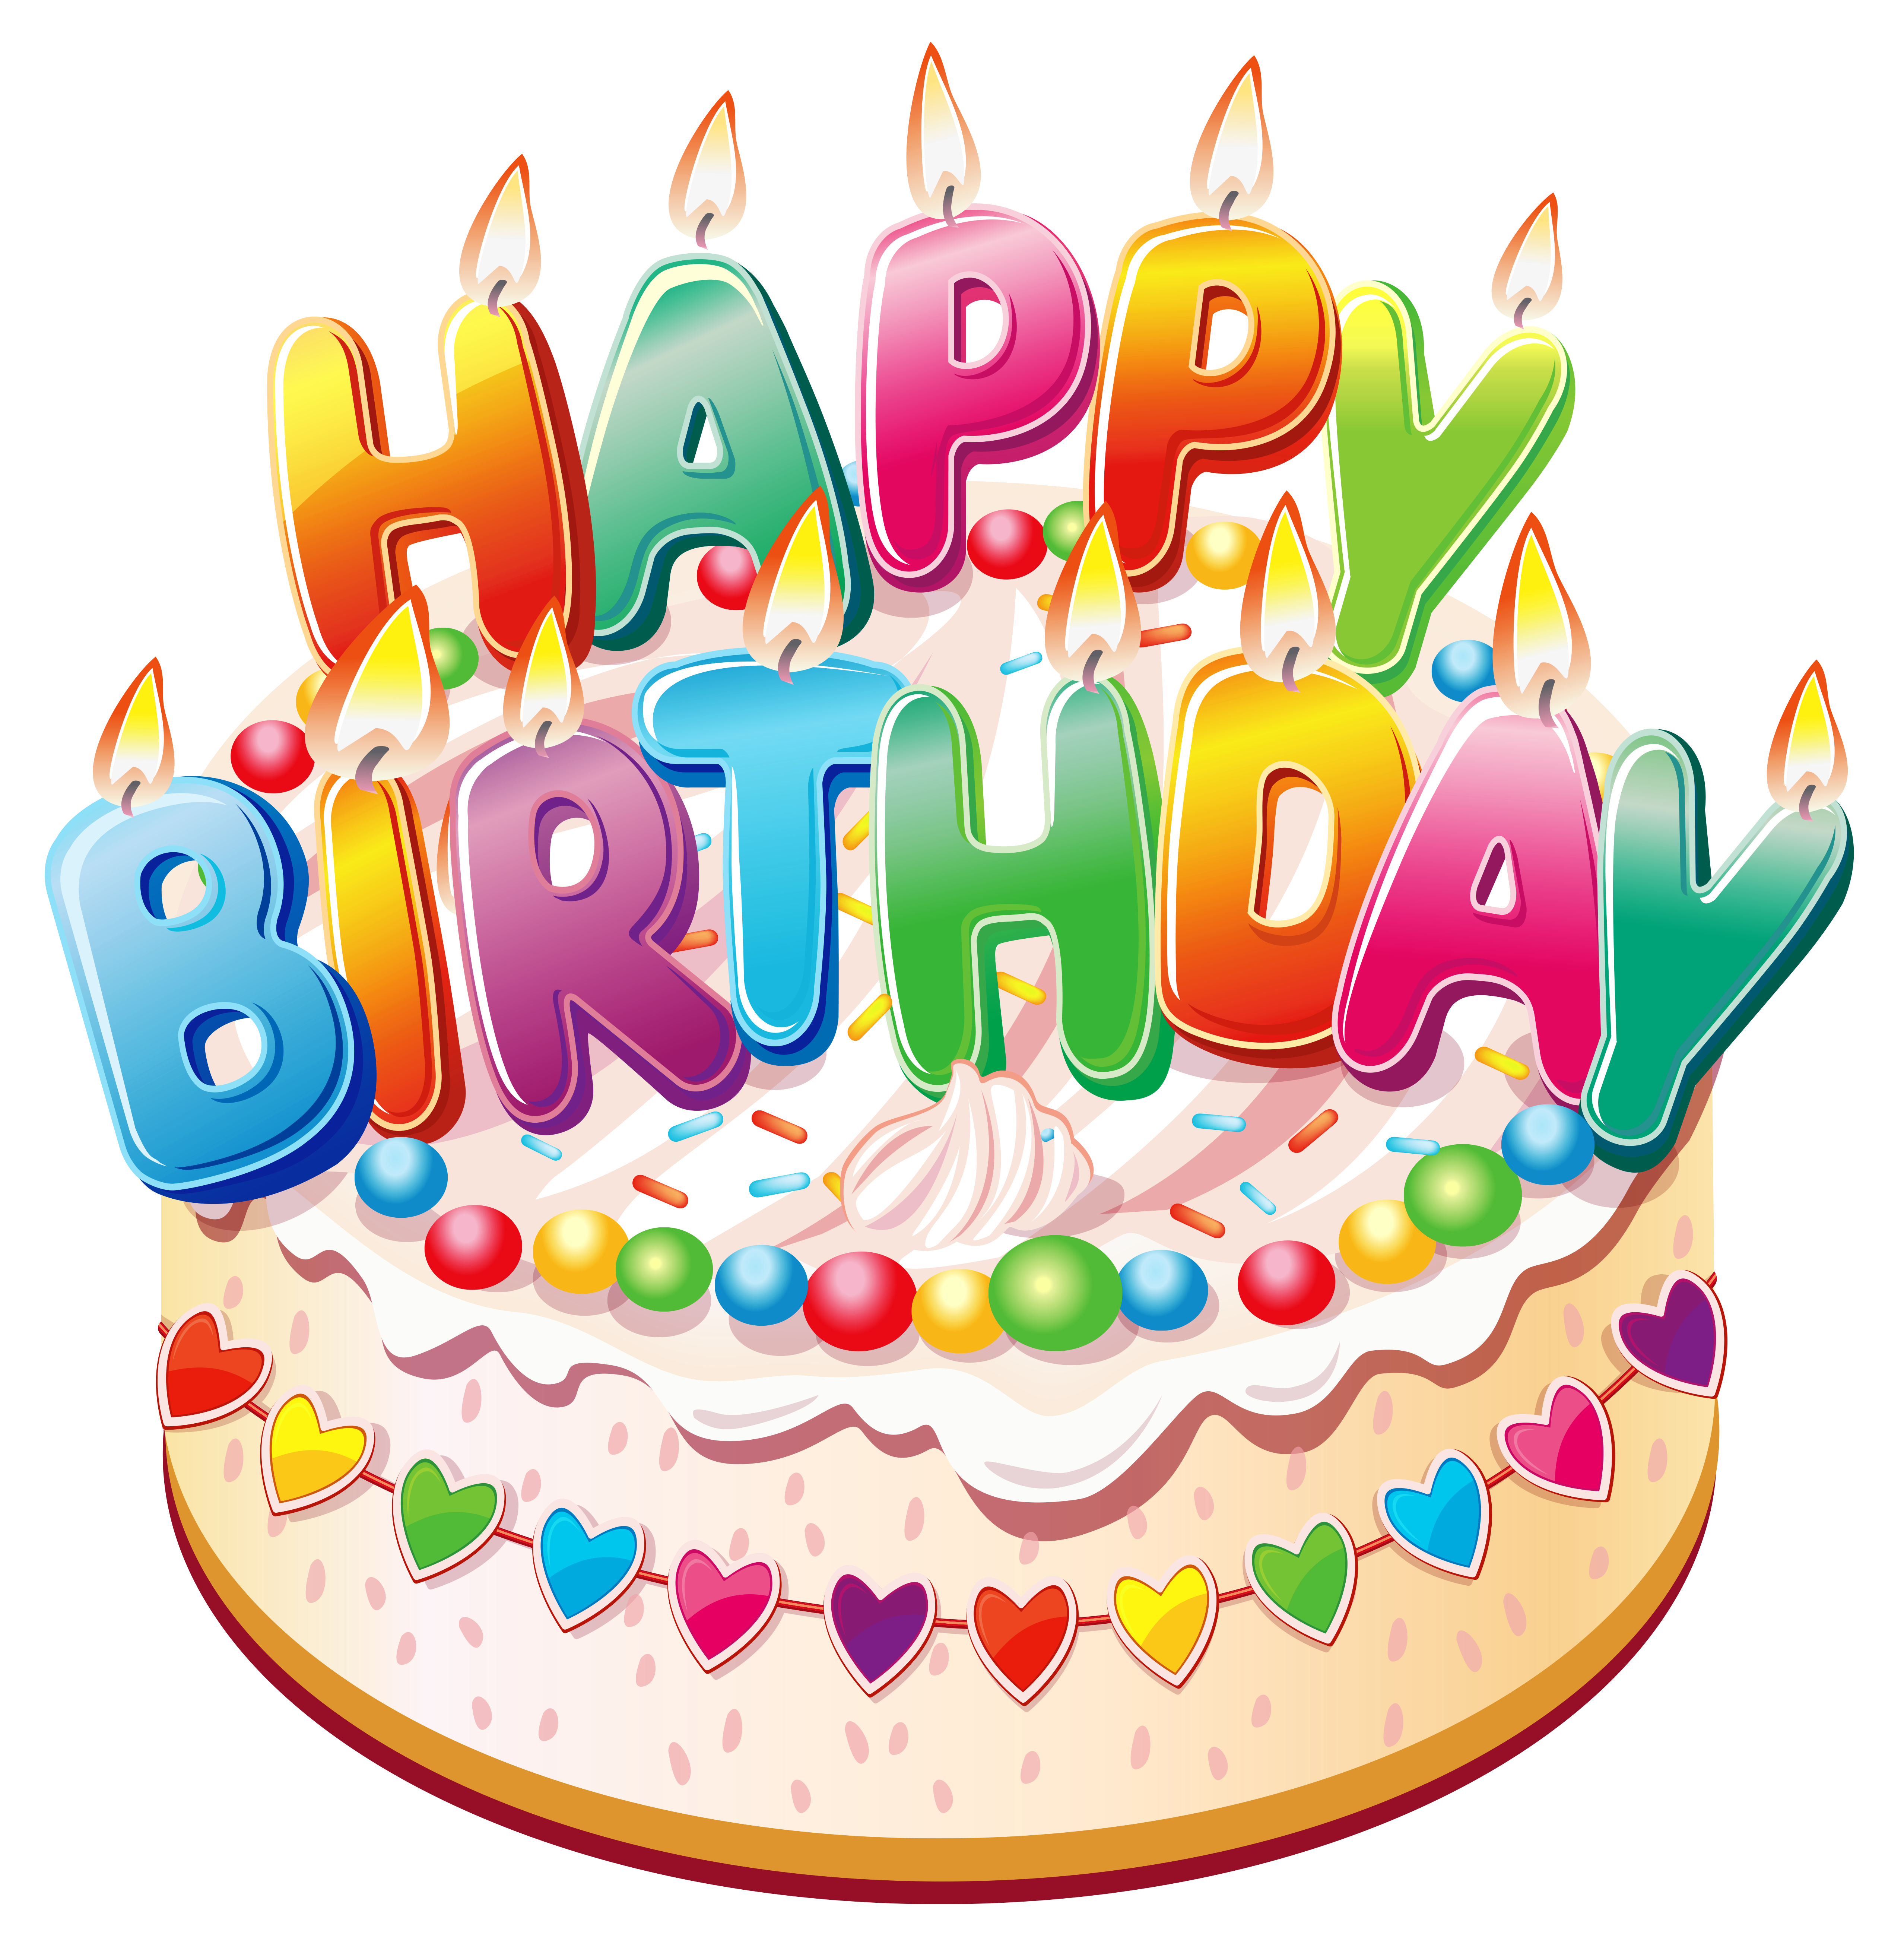 Birthday cake clipart png. Funny